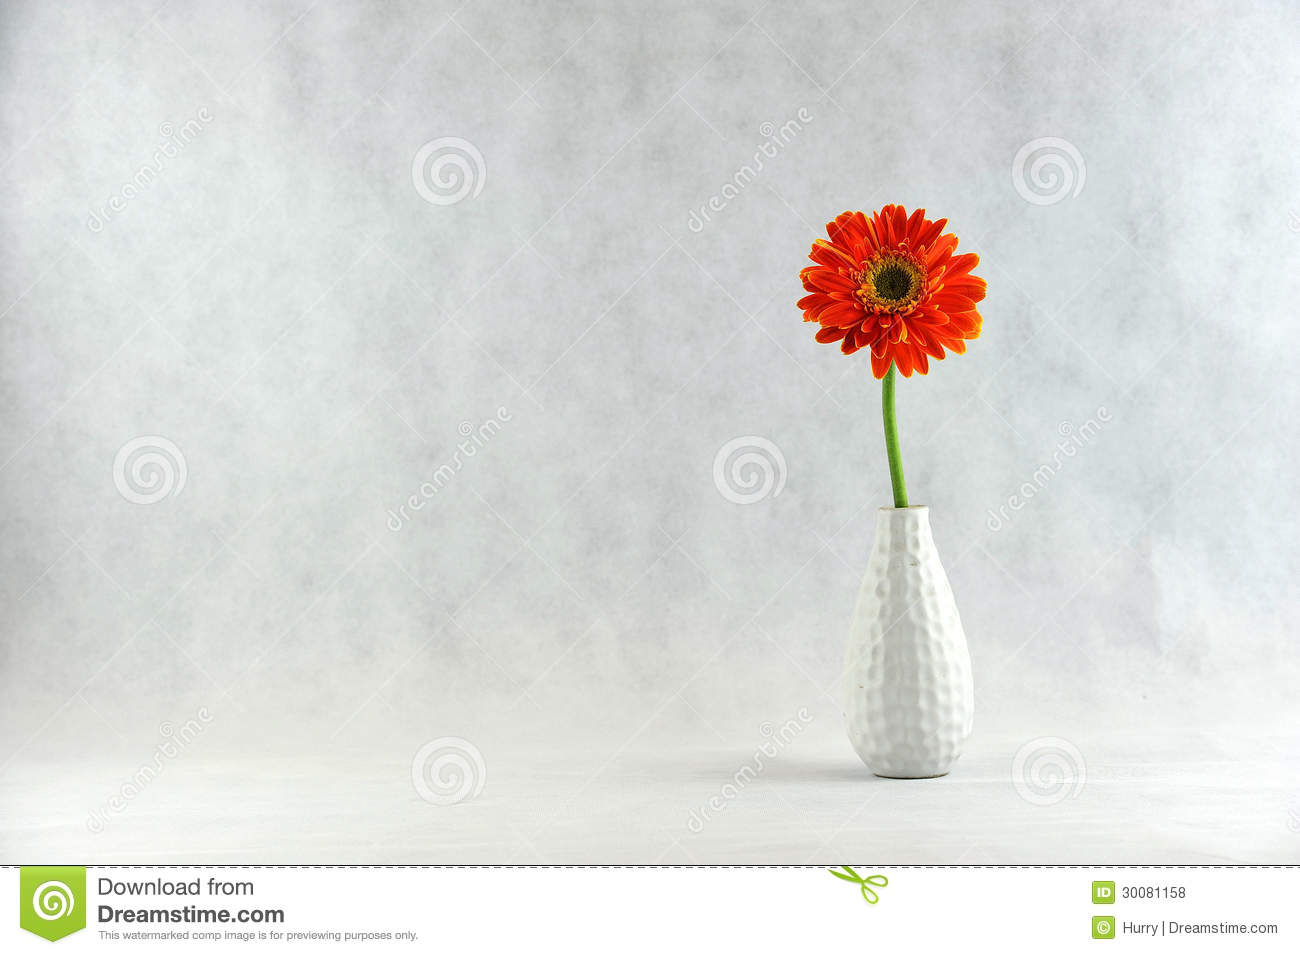 Gerbera Daisy in vase stock photo. Image of growth ...